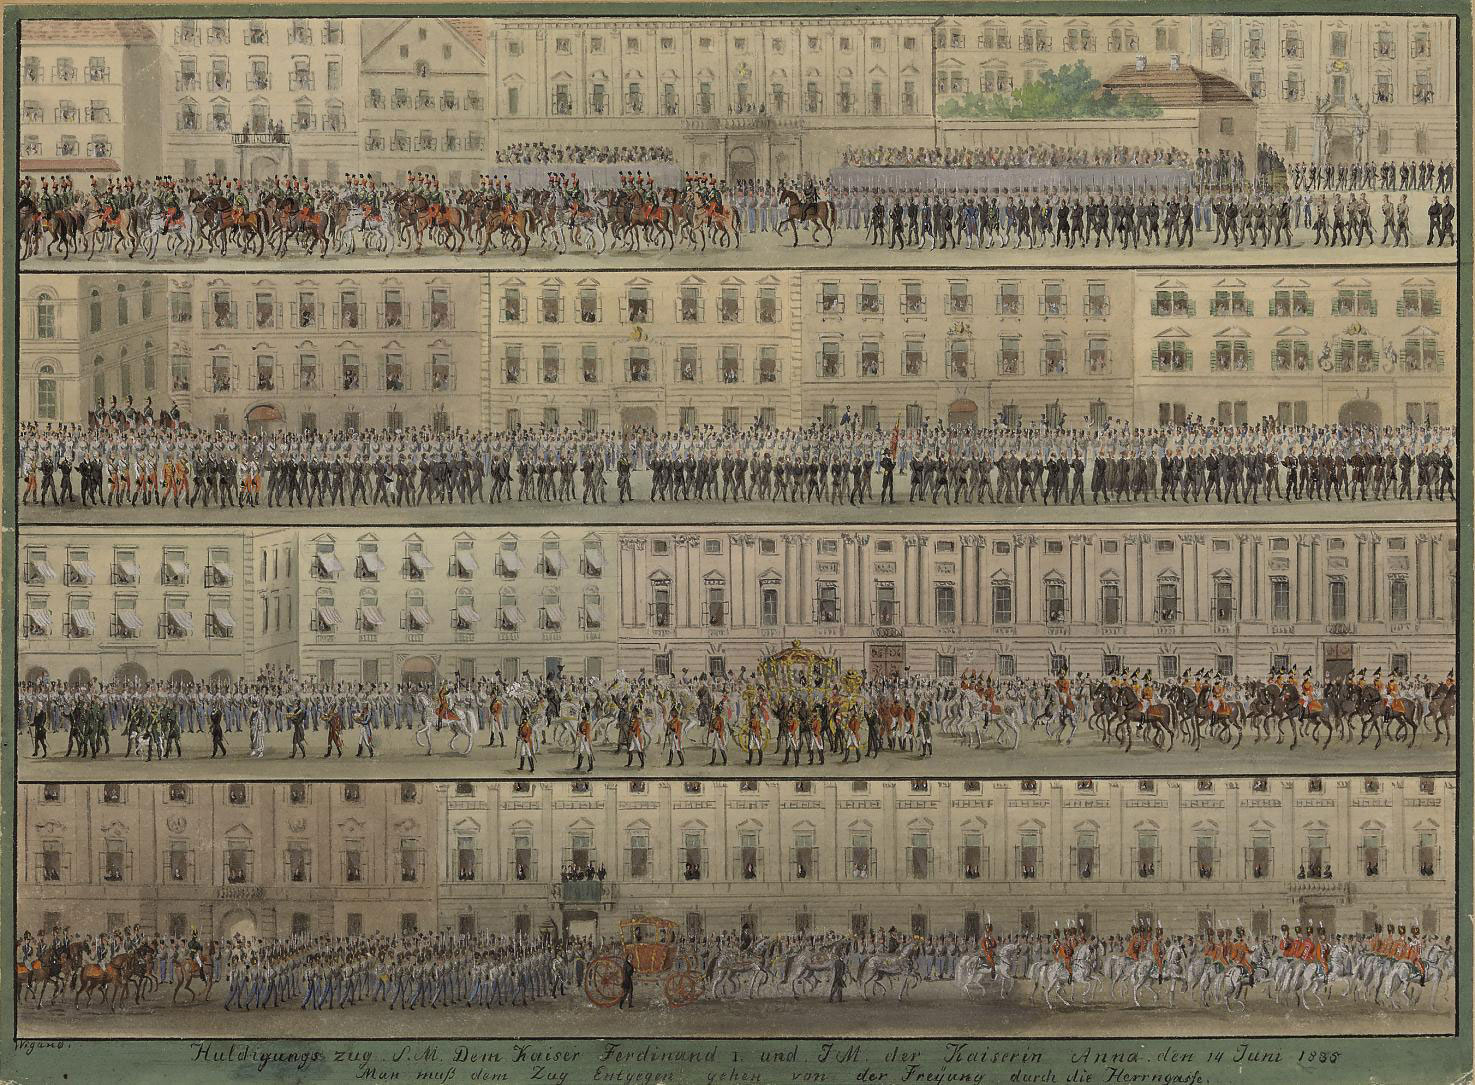 A procession in honor of Emperor Ferdinand I and Empress Anna, June 1835